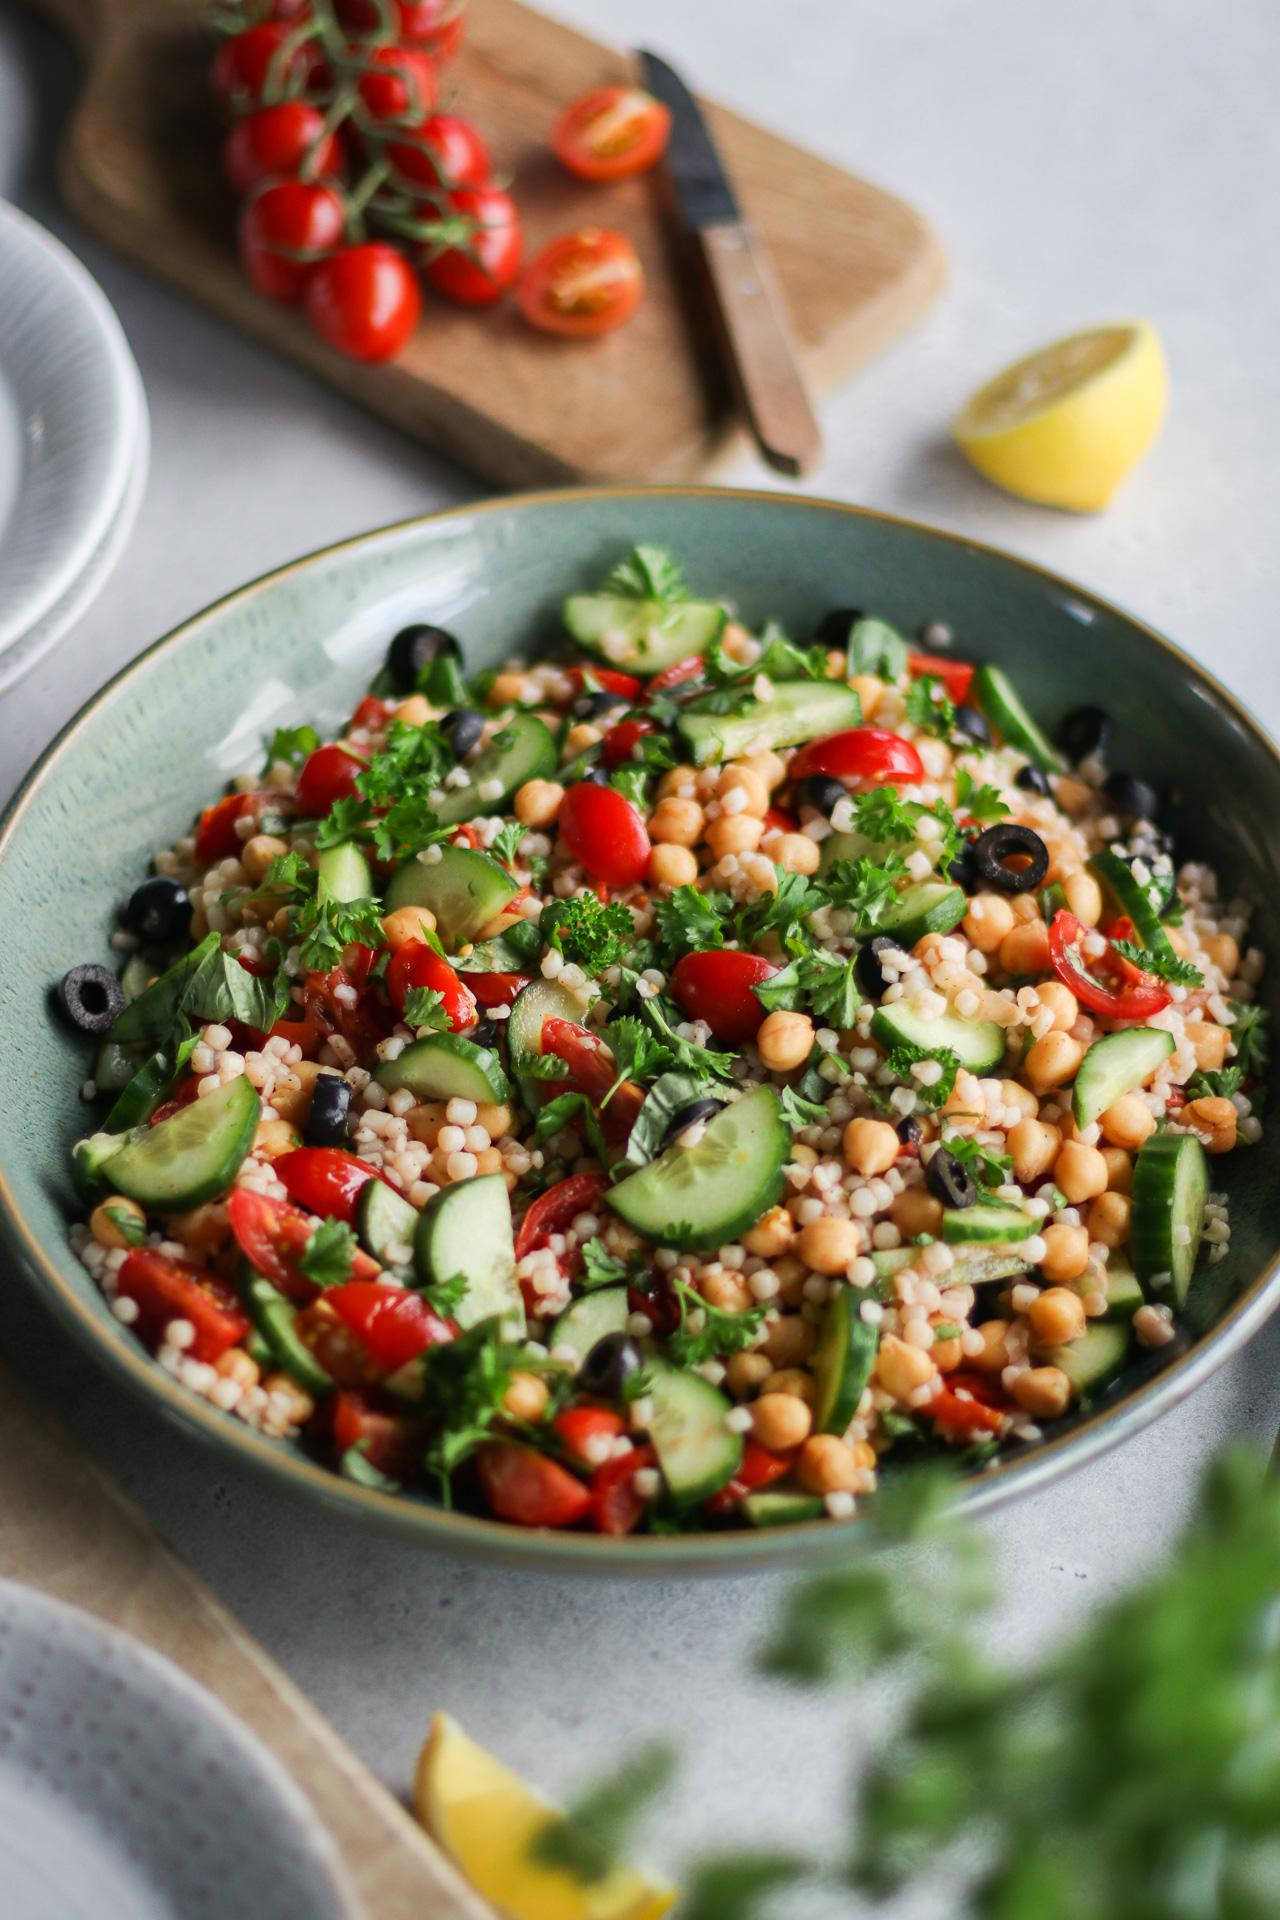 Main image of Warm Pearl Couscous Salad